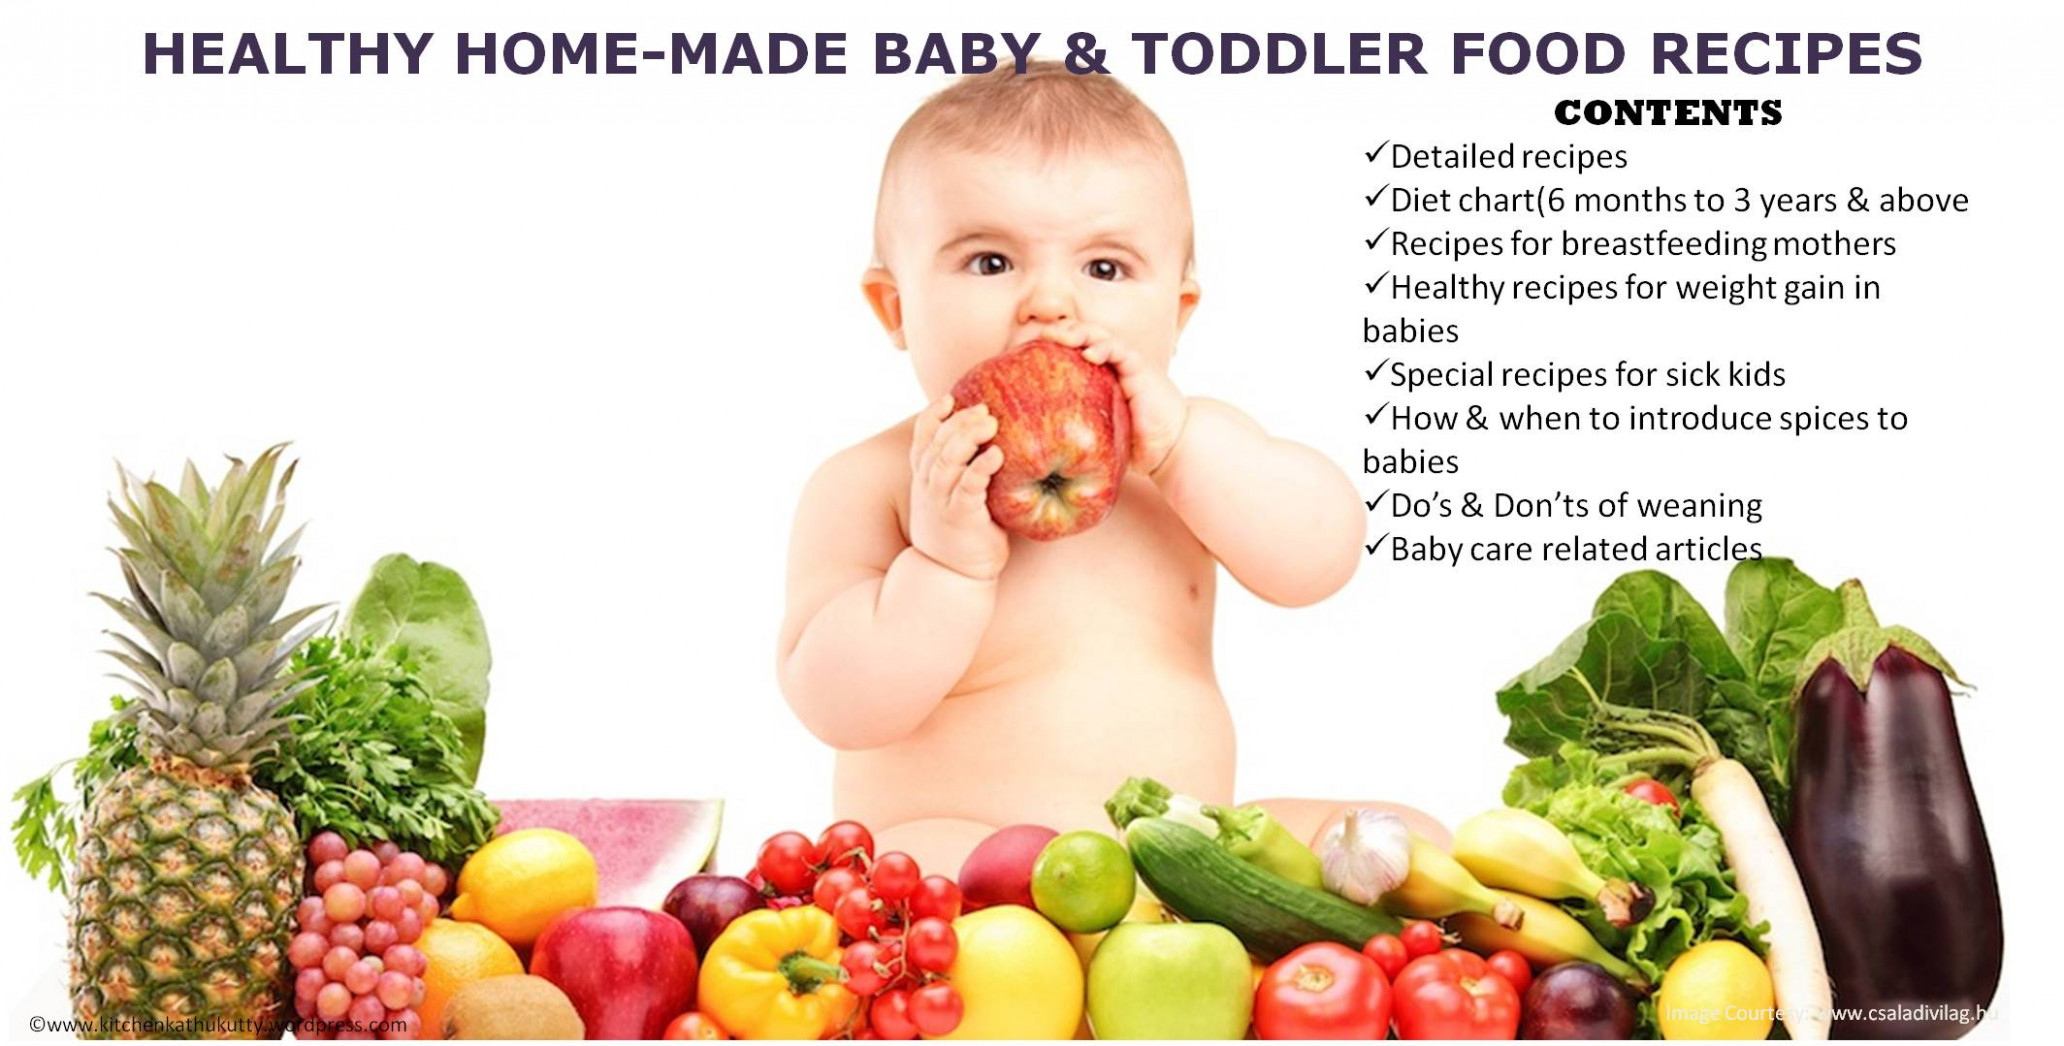 BABY & TODDLER FOOD RECIPES - KITCHEN KATHUKUTTY - Healthy Recipes Diet